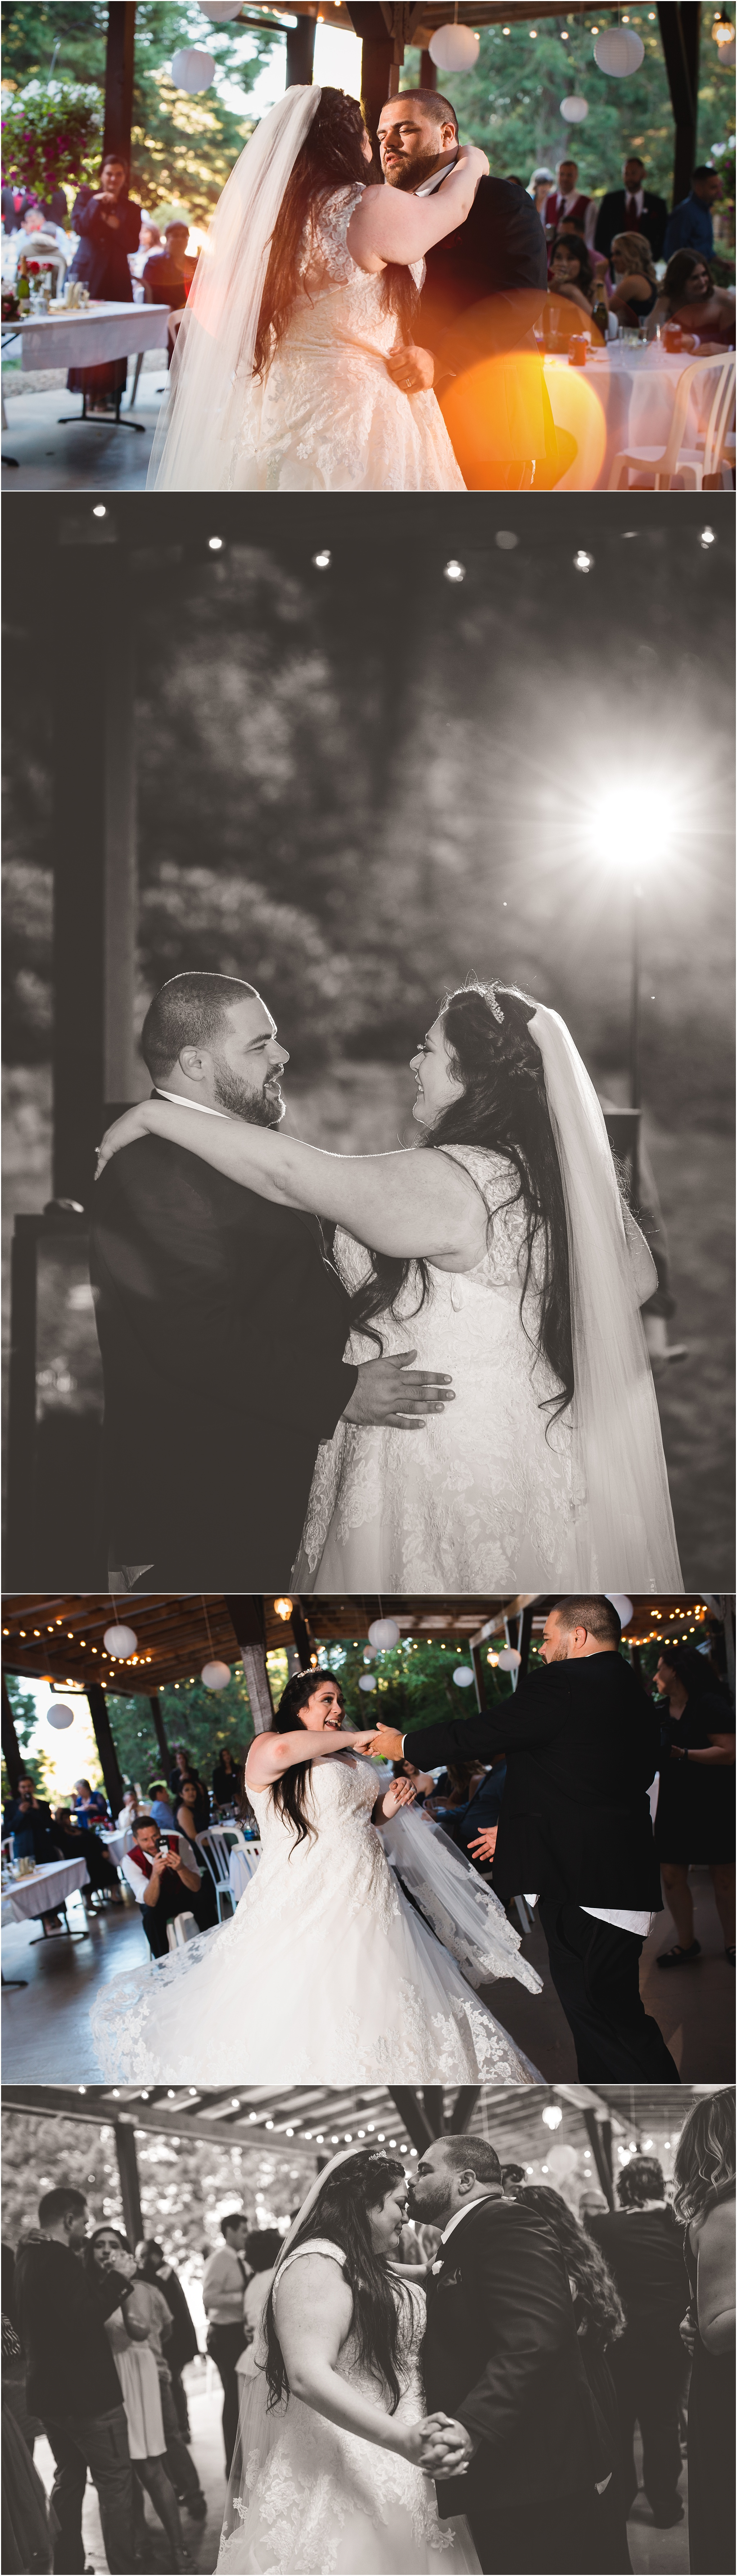 bride-and-grooms-first-dance.jpg